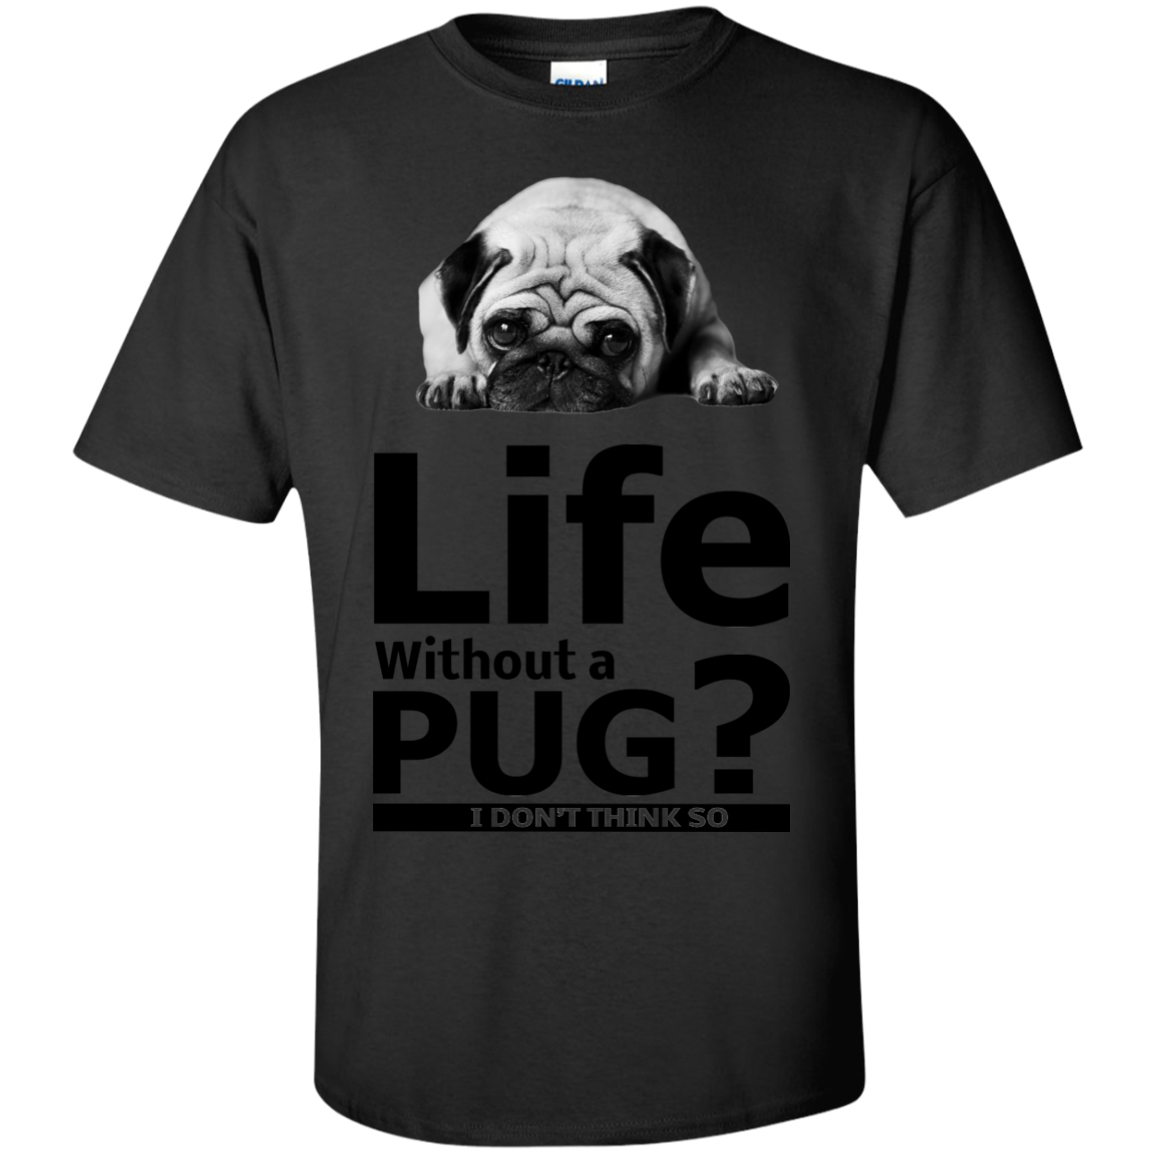 LIFE WITHOUT A PUG ? I DON'T THINKS SO